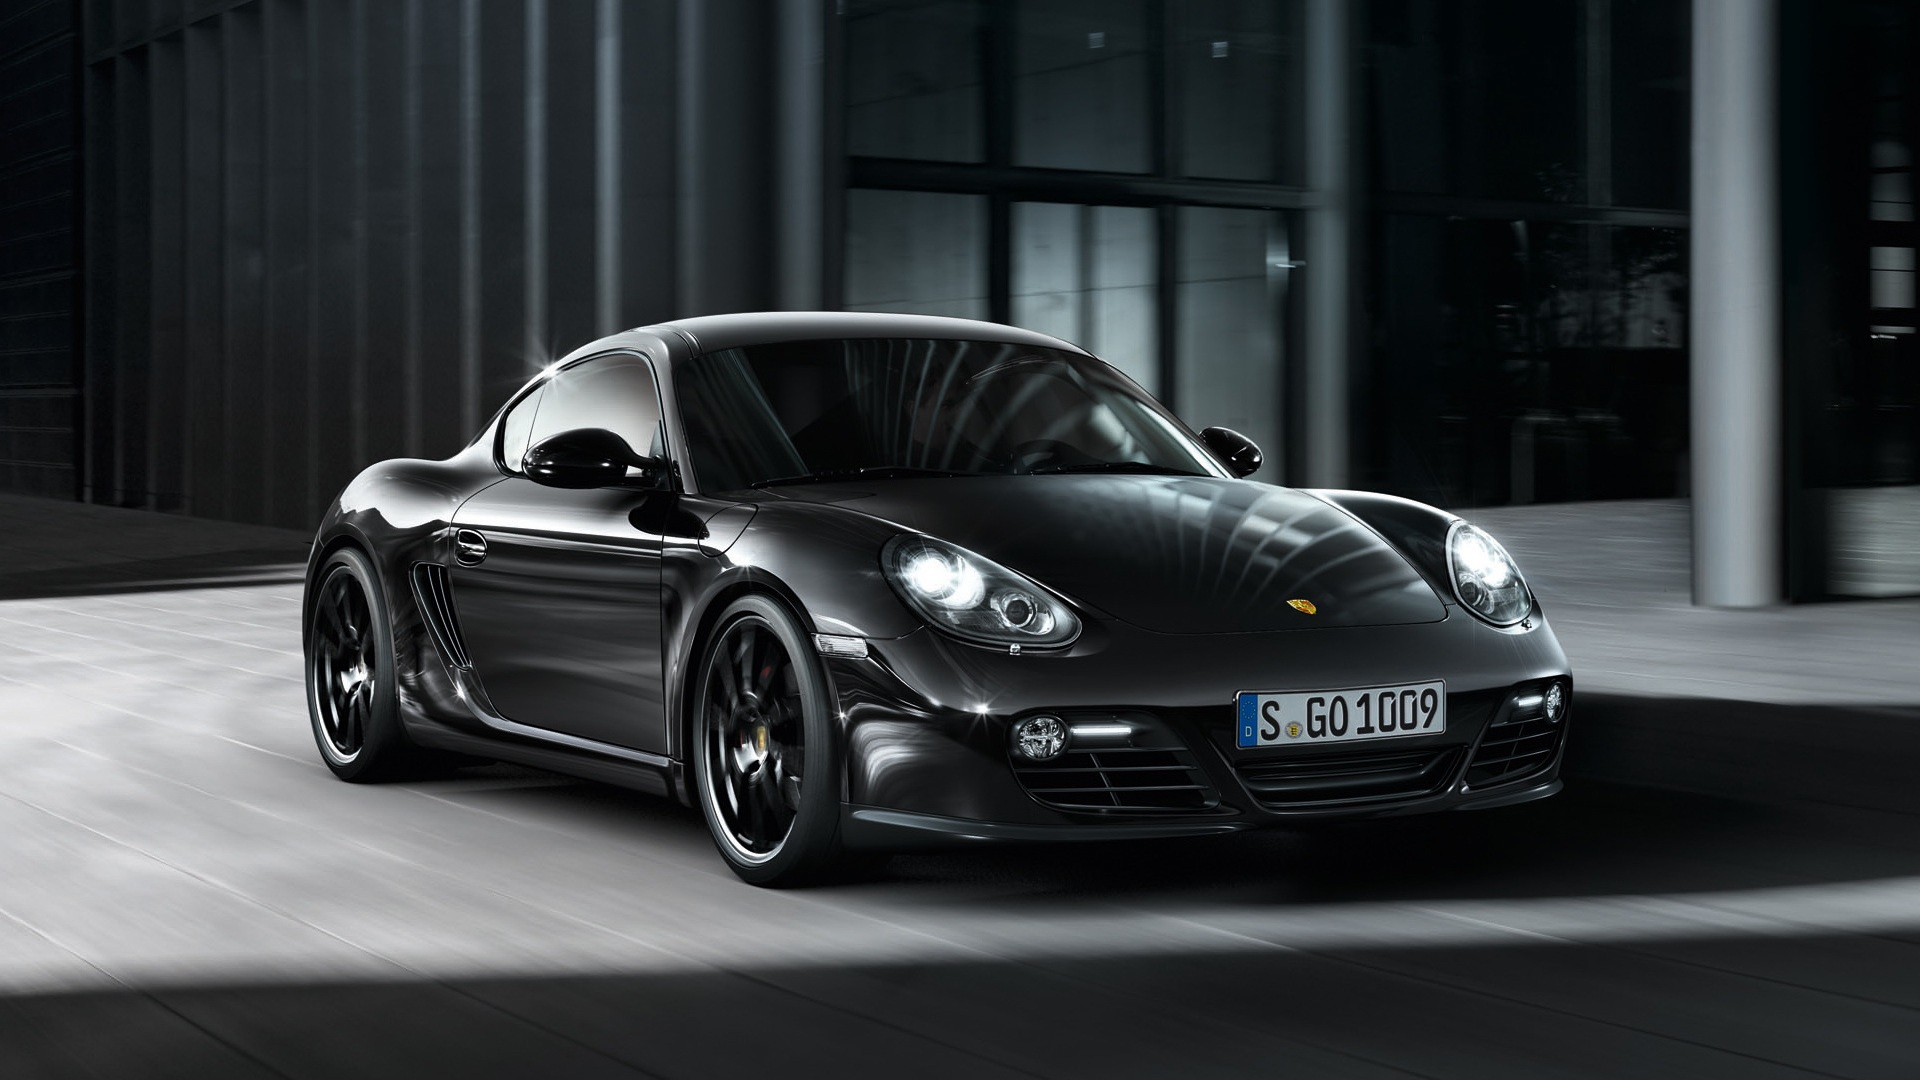 porsche wallpaper hd 48599